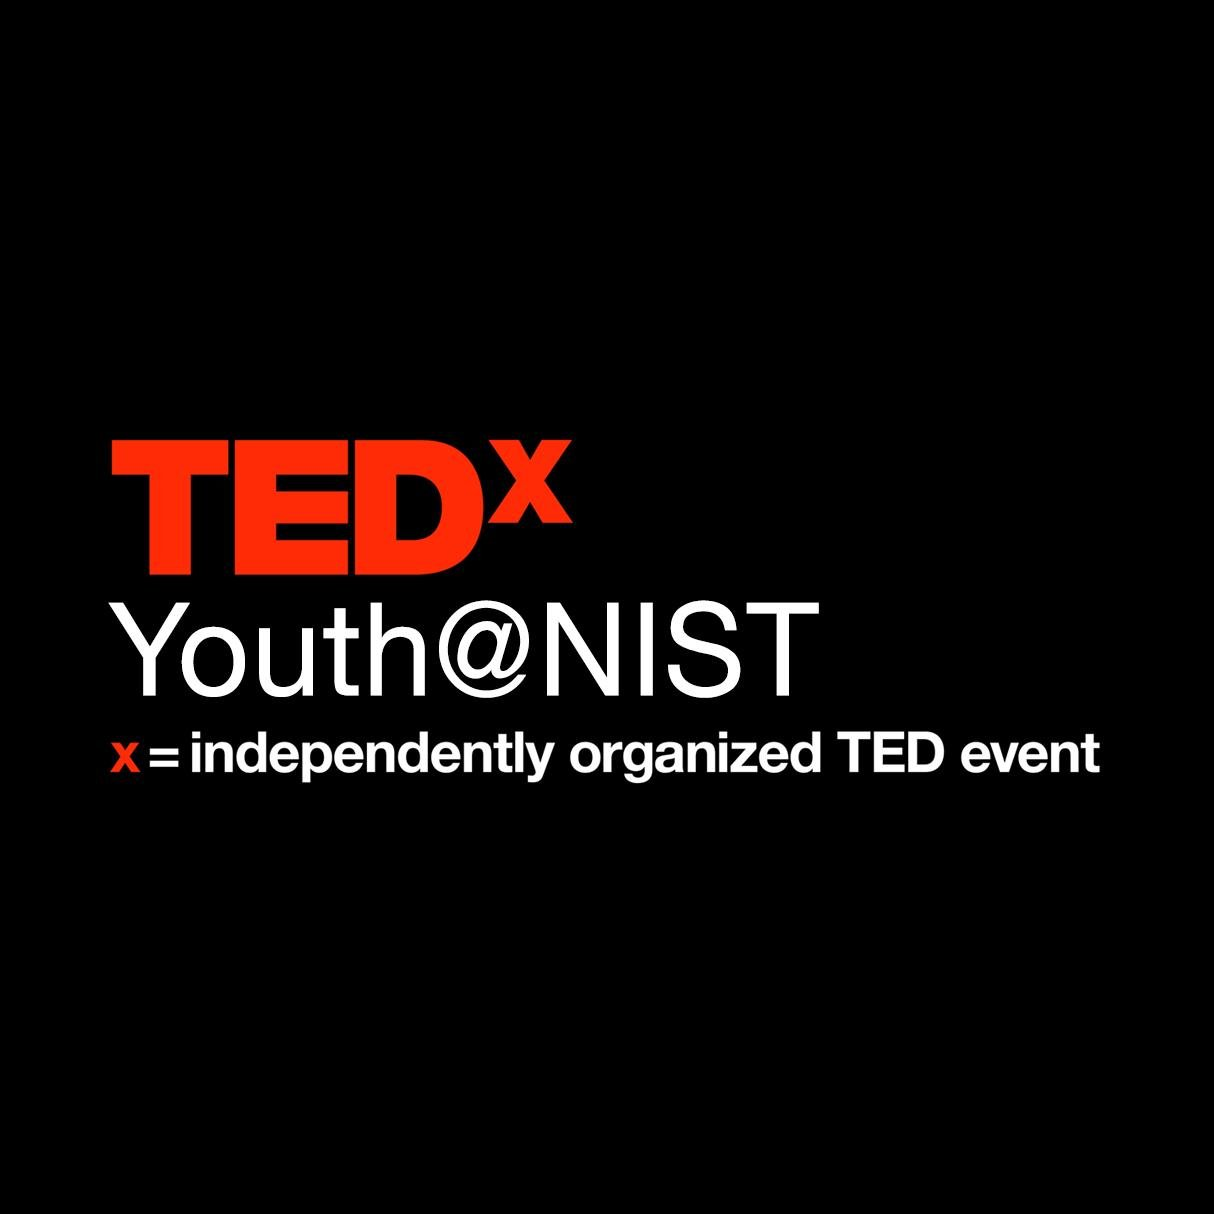 @TEDxYouthNIST